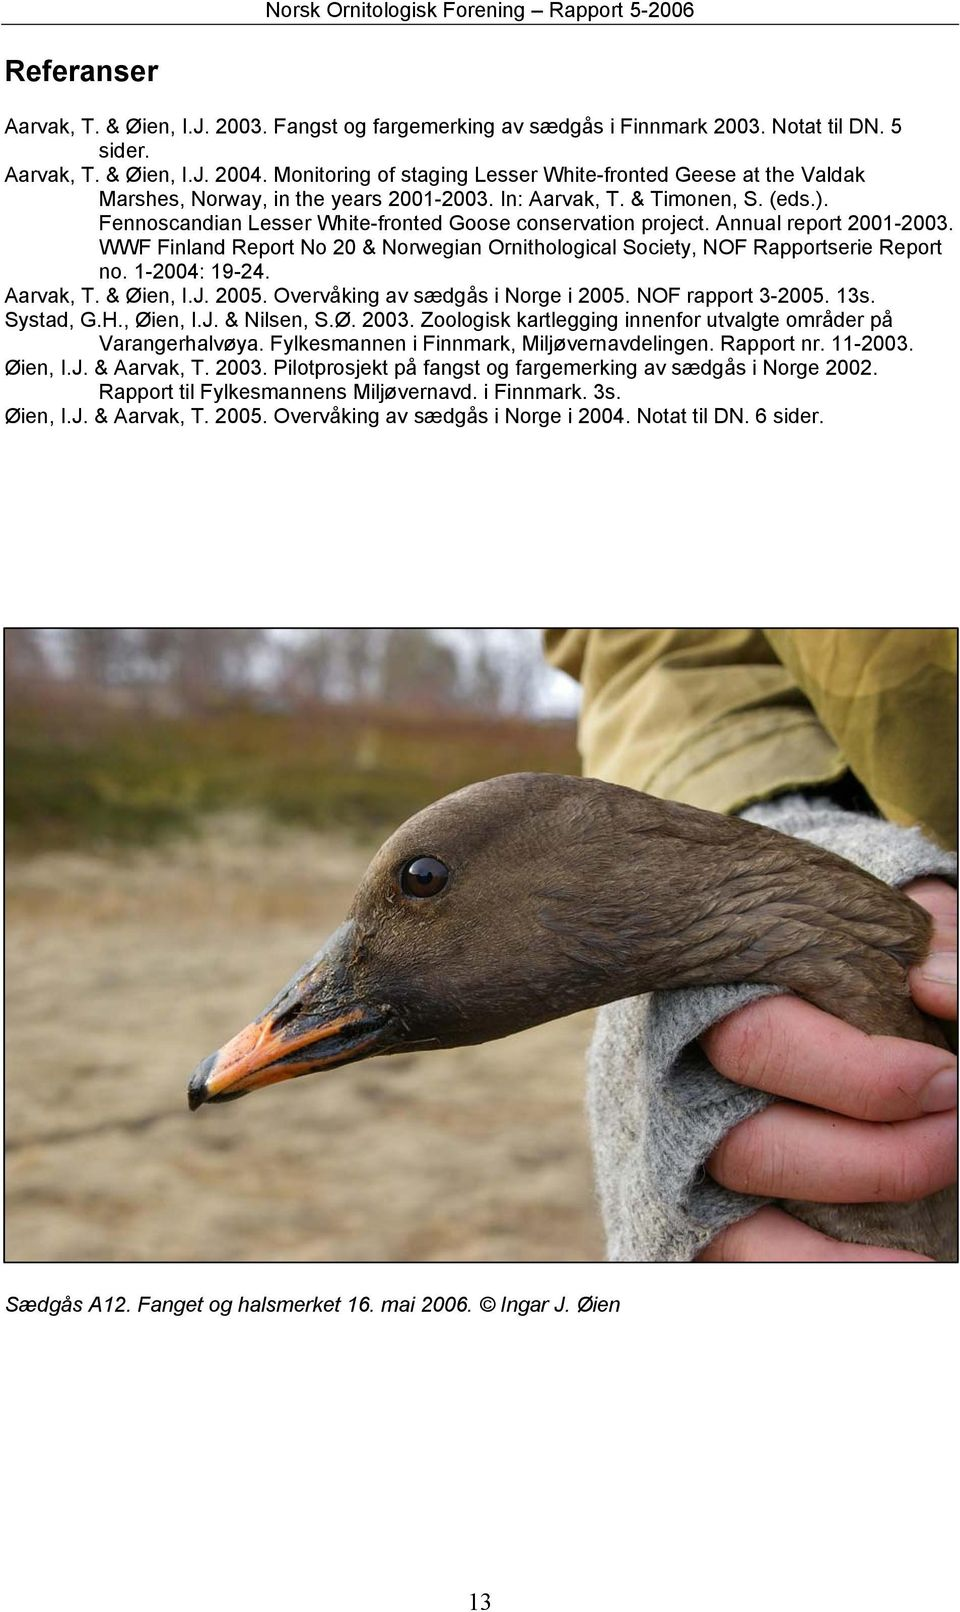 Fennoscandian Lesser White-fronted Goose conservation project. Annual report 2001-2003. WWF Finland Report No 20 & Norwegian Ornithological Society, NOF Rapportserie Report no. 1-2004: 19-24.